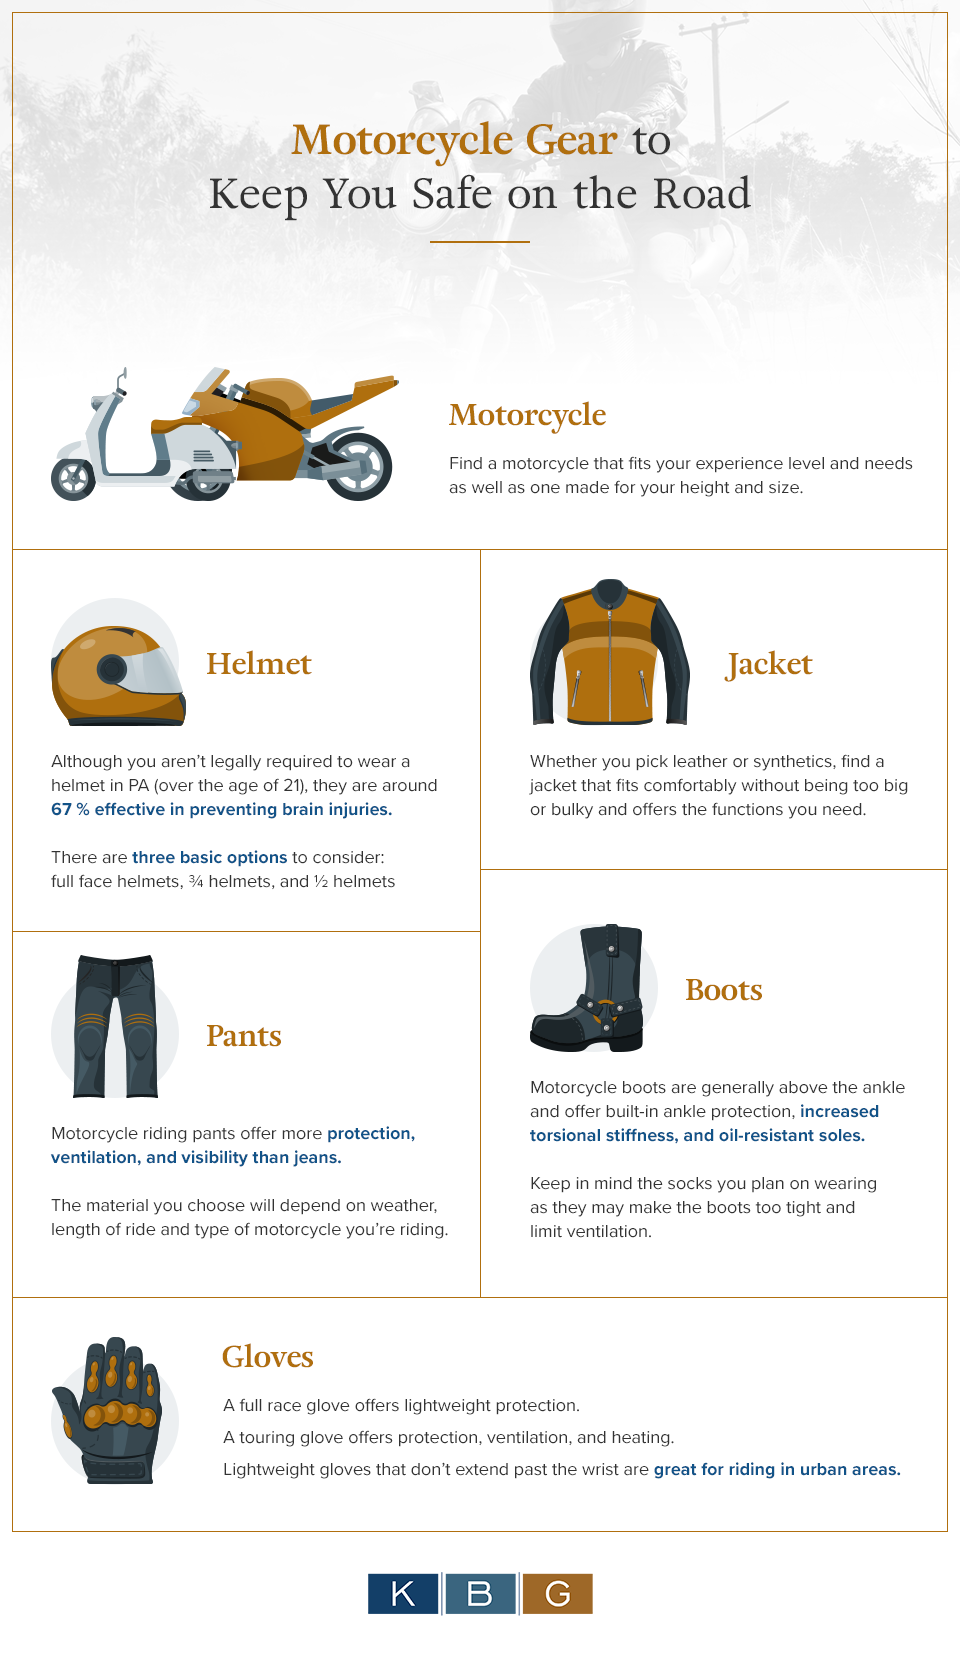 Motorcycle Gear to keep You Safe on the Road [infographic]